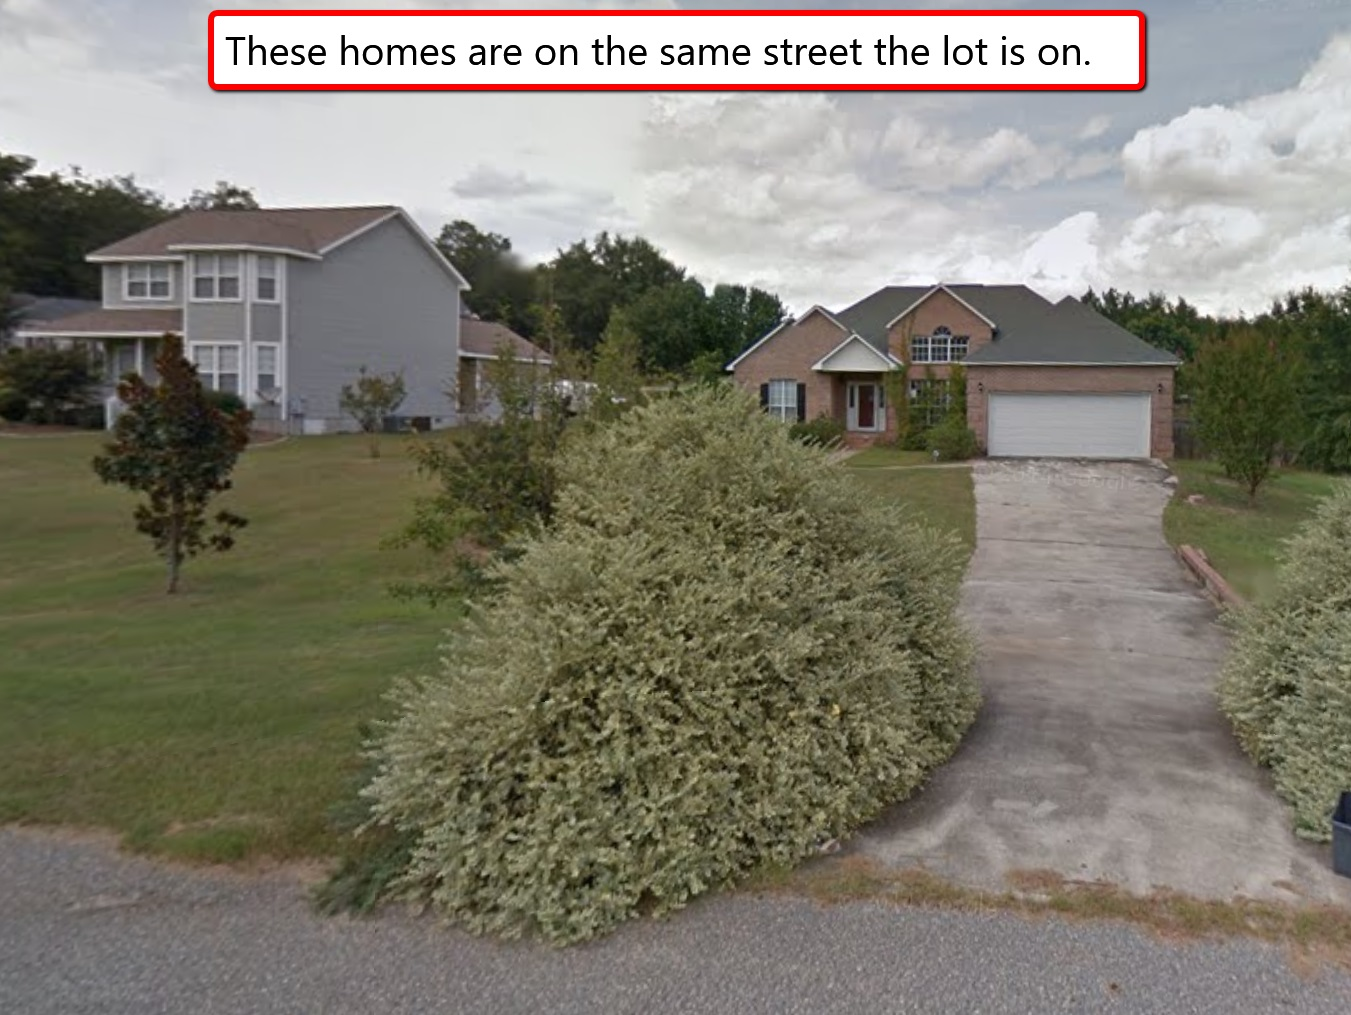 Byron, GA Land for Sale   16117 Square Foot Lot on Paved Road in a ...